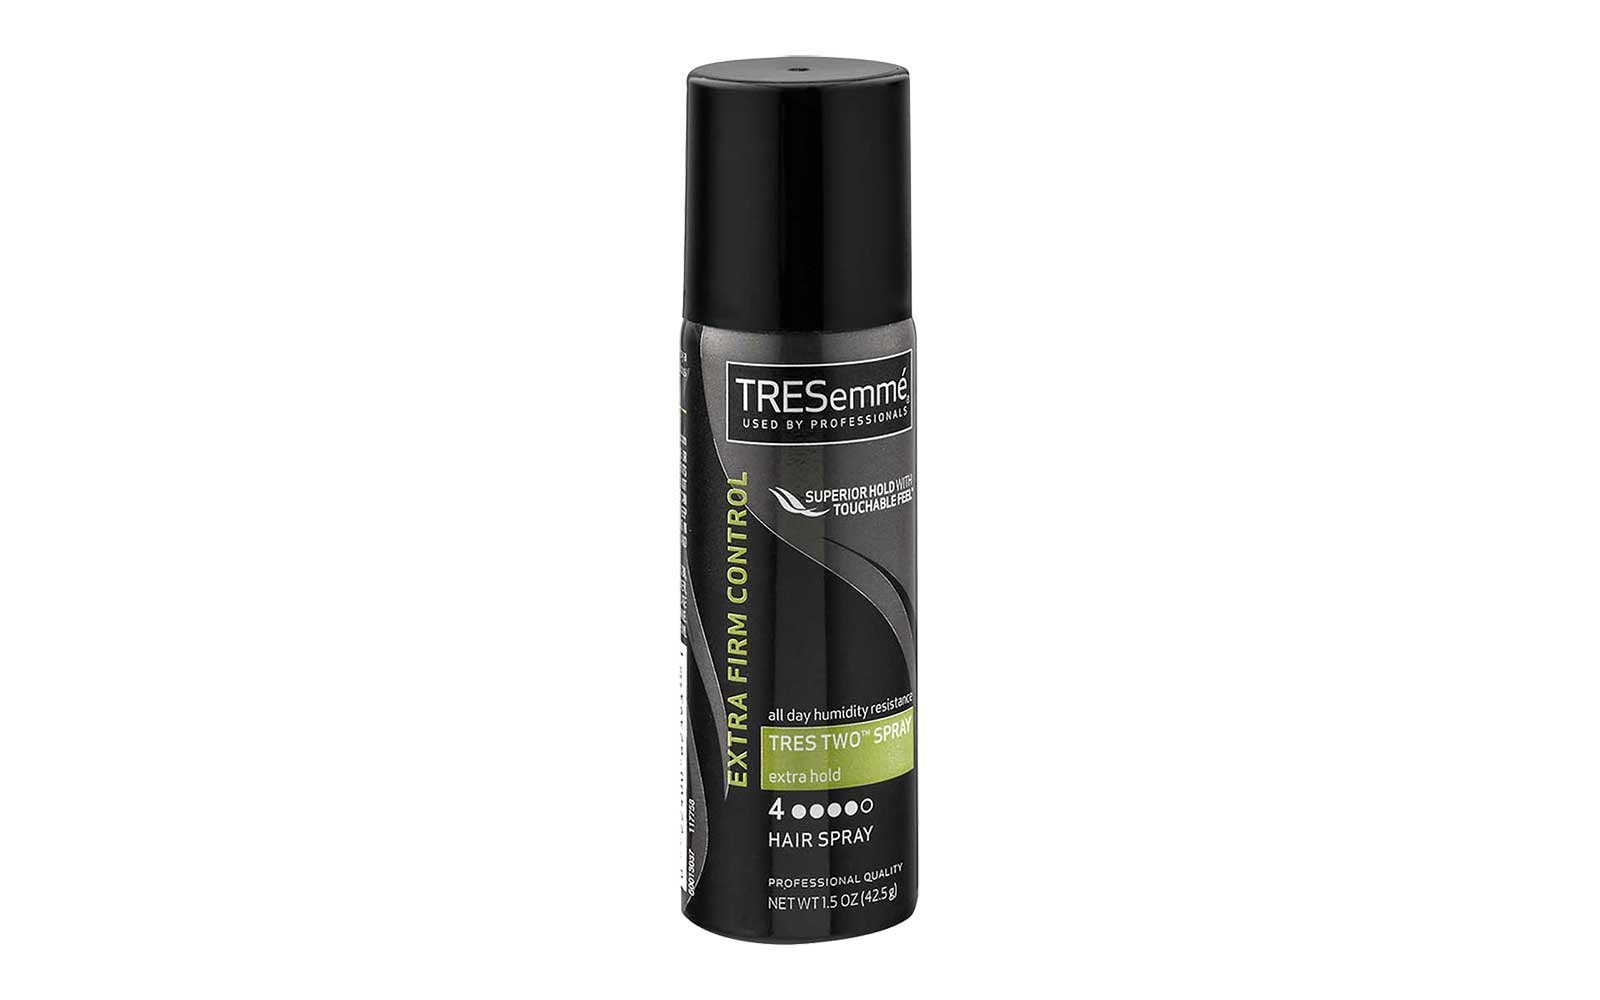 TRESemme TRES Two Extra Hold Aerosol Hair Spray